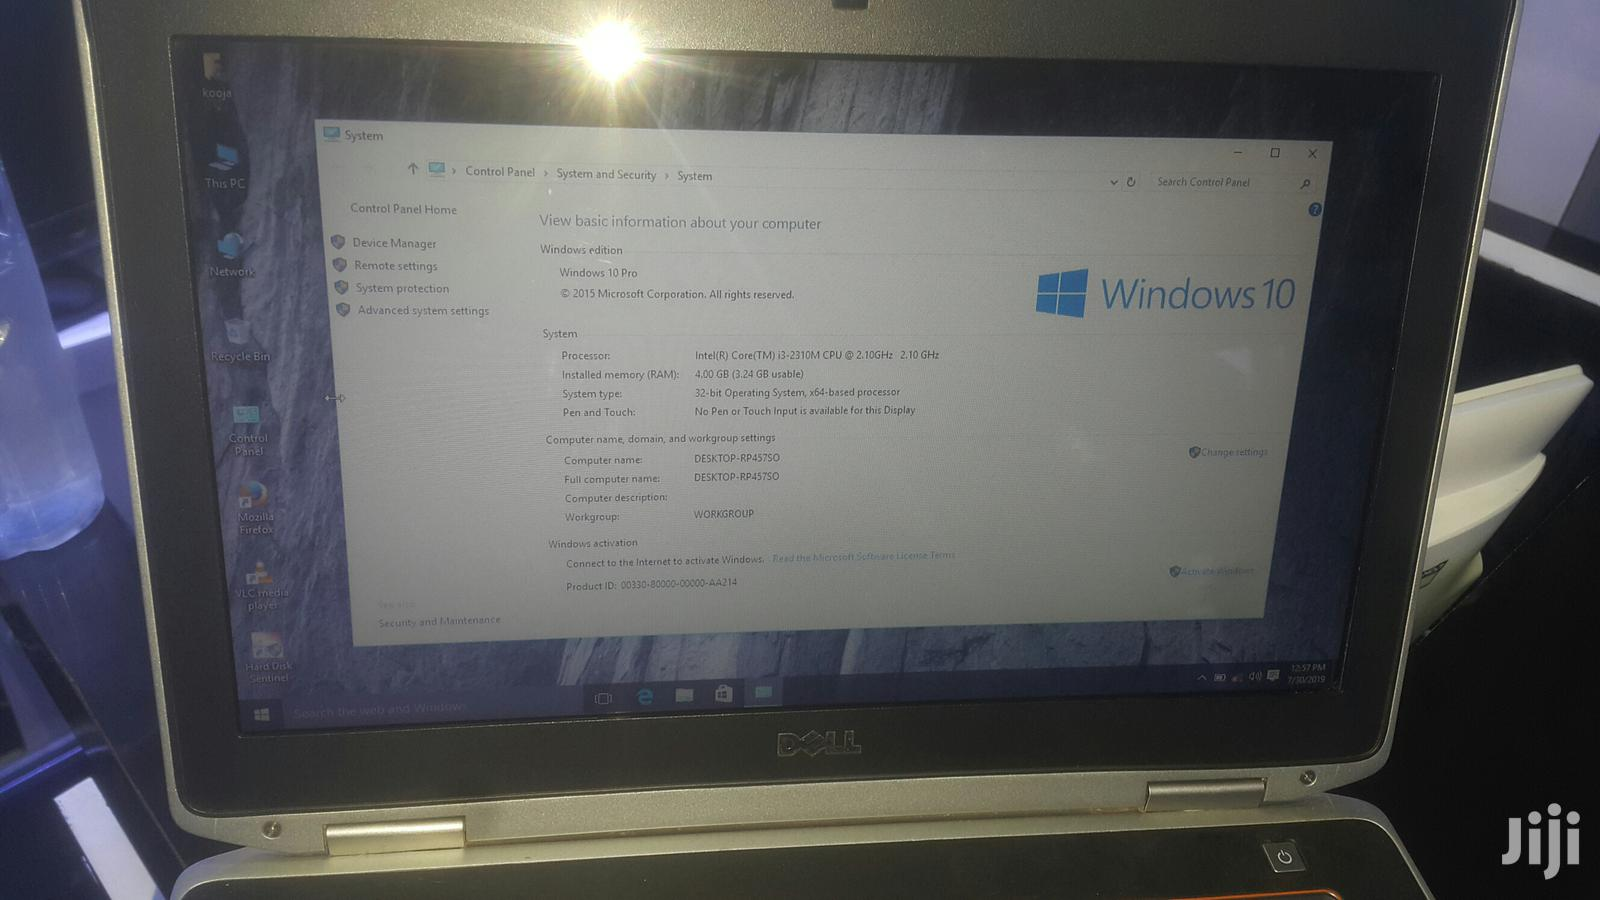 Dell Inspiron 14 5458 19 Inches 500 Gb Hdd Core I3 4 Gb Ram   Laptops & Computers for sale in Kampala, Central Region, Uganda